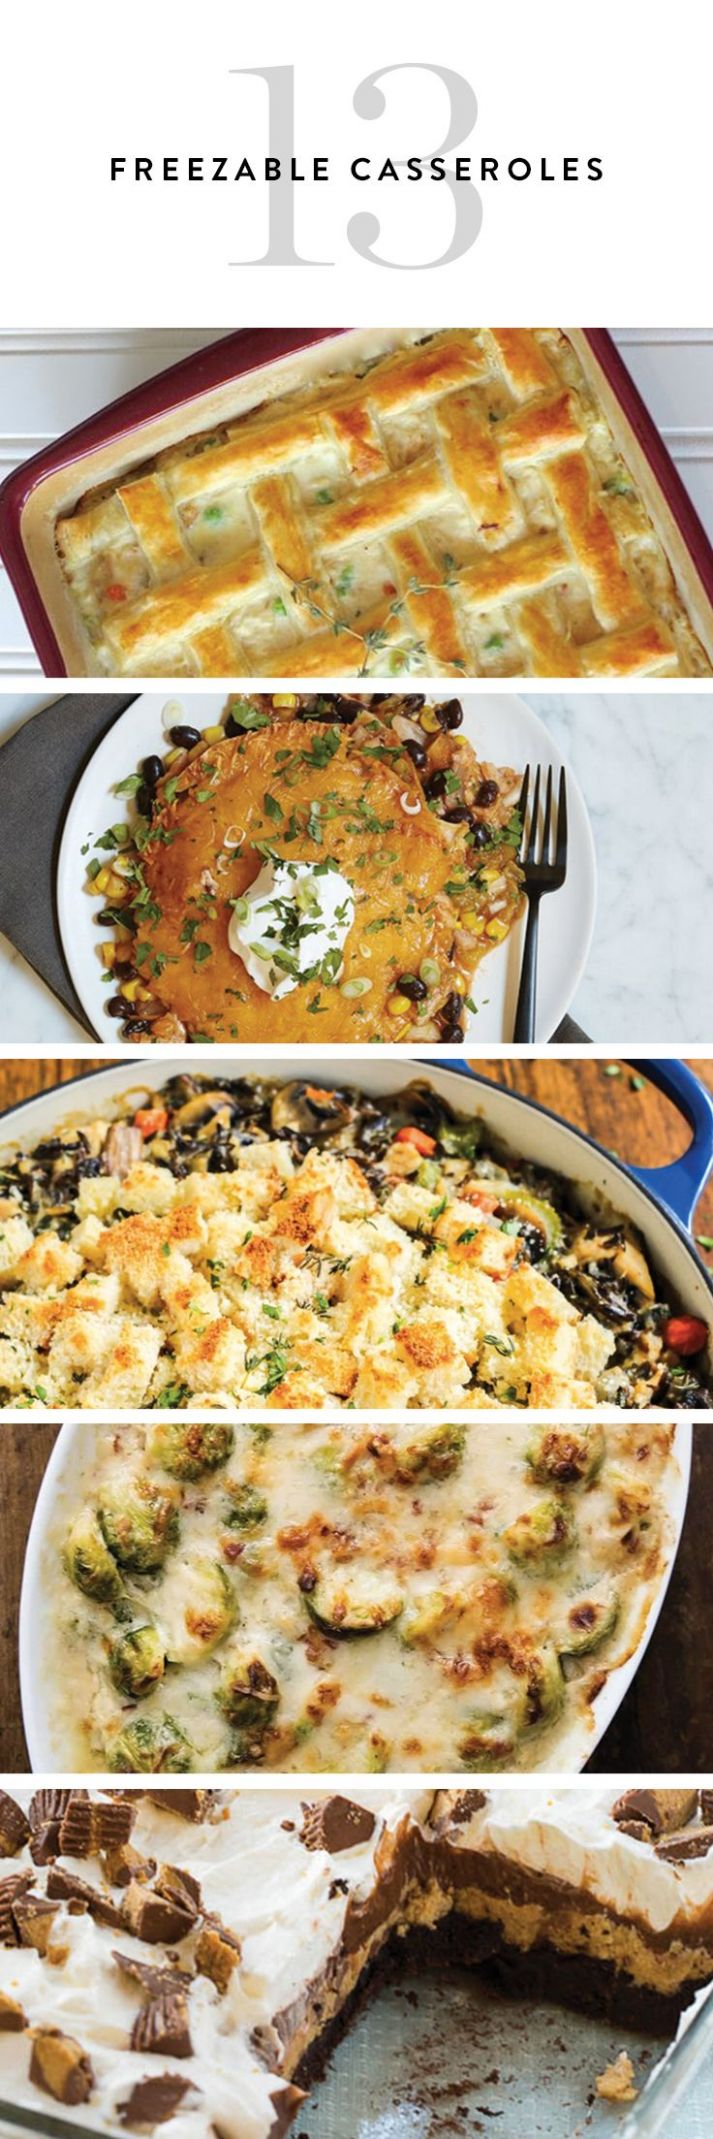 9 Casseroles You Can Freeze and Eat Anytime | Freezable meals ..